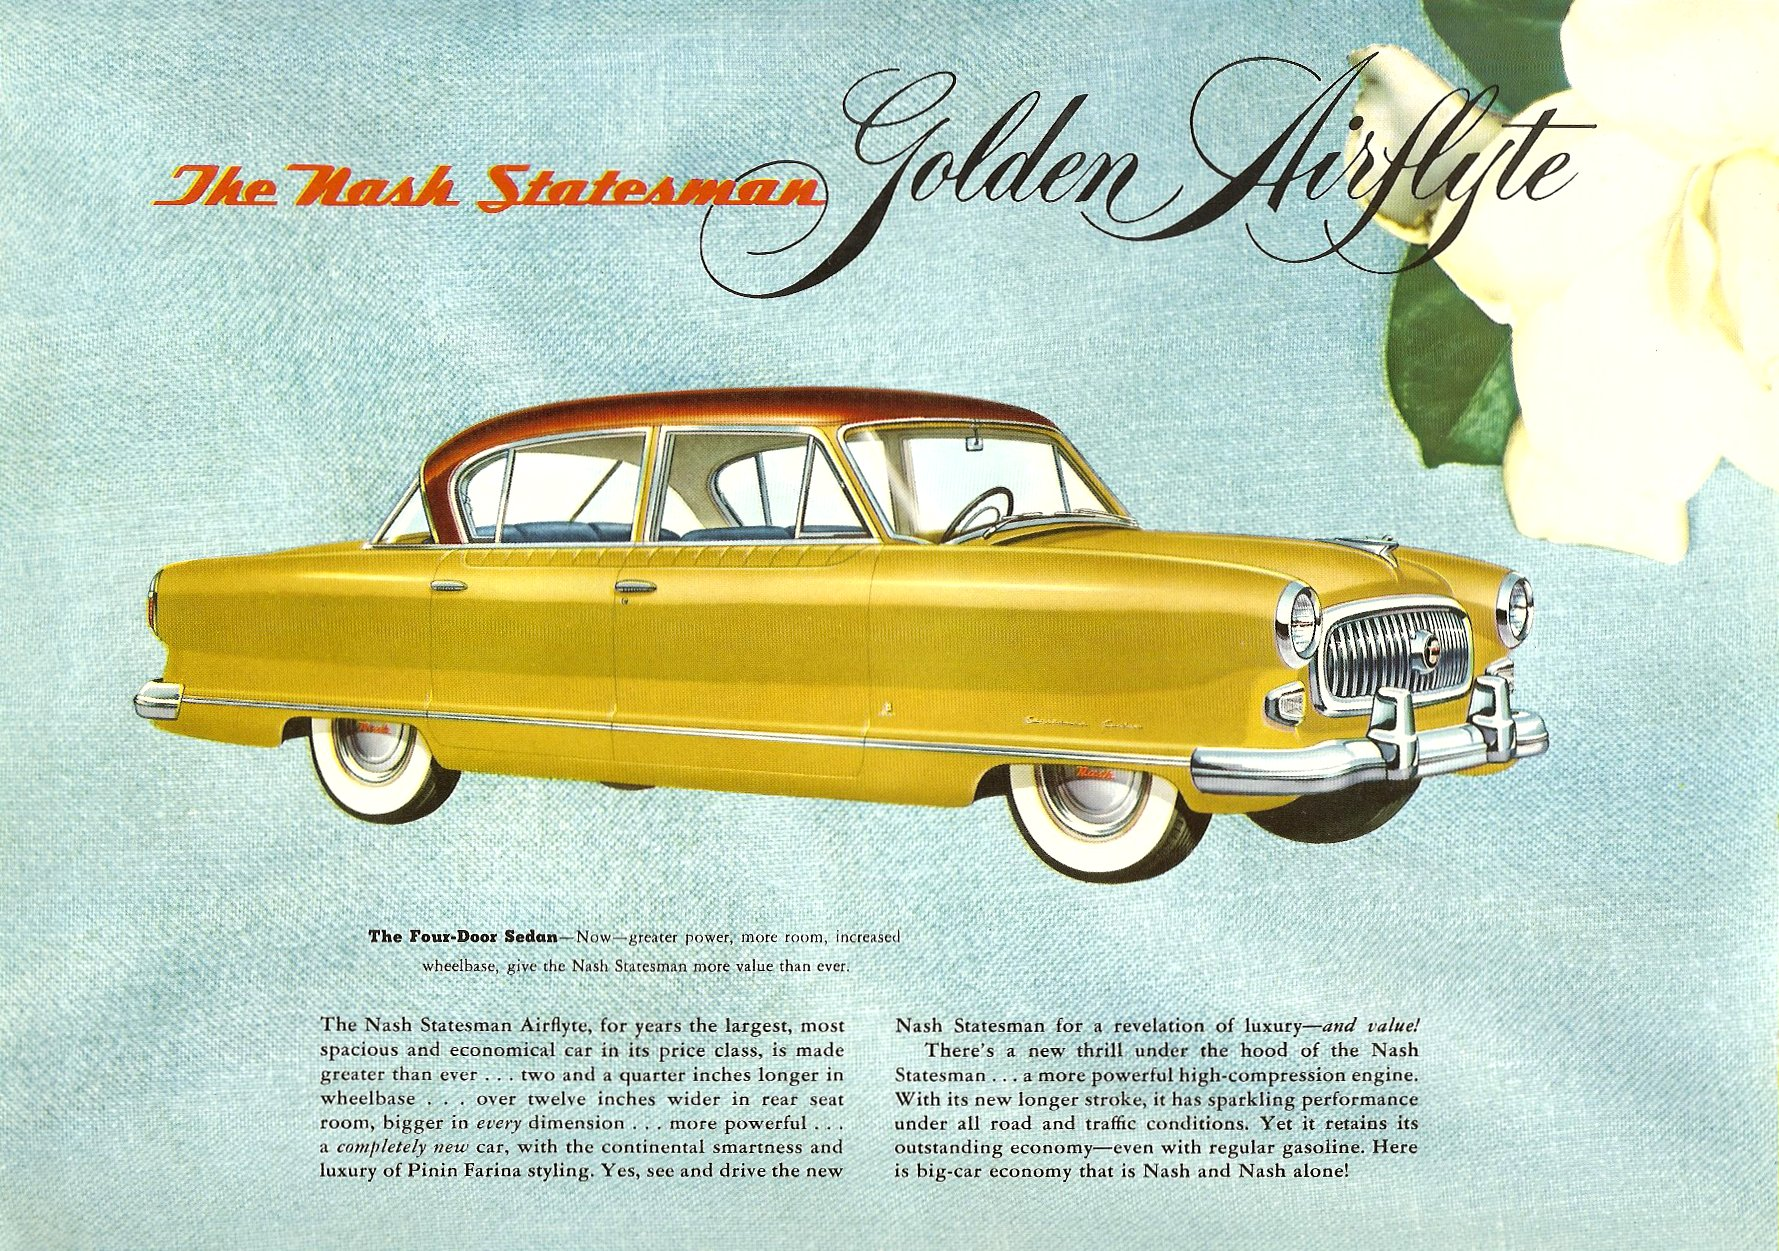 1952 The Golden Airflyte 1902-1952 Golden Anniversary By NASH Sales Catalog NSP-52-950-250M-3-52 Page 12, 12″x9″